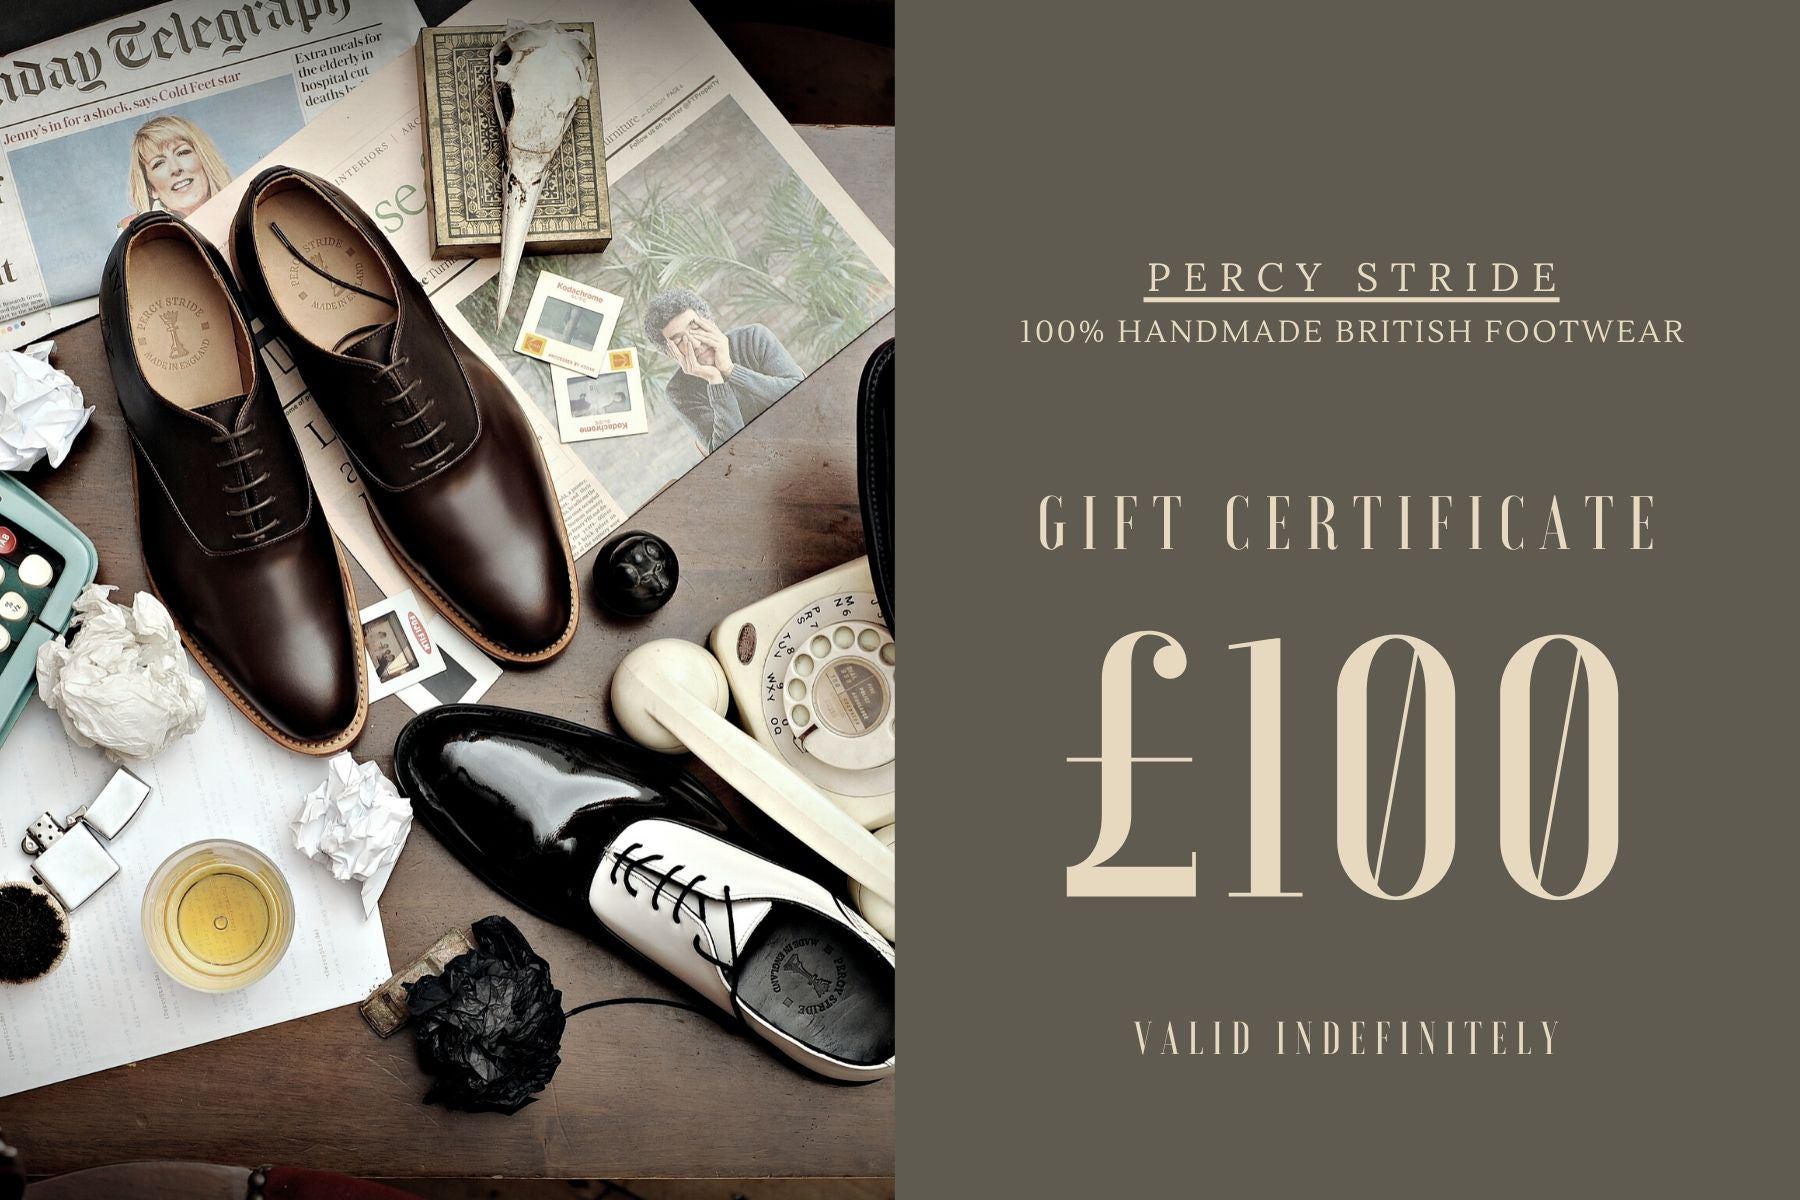 Percy Stride Footwear Gift Card